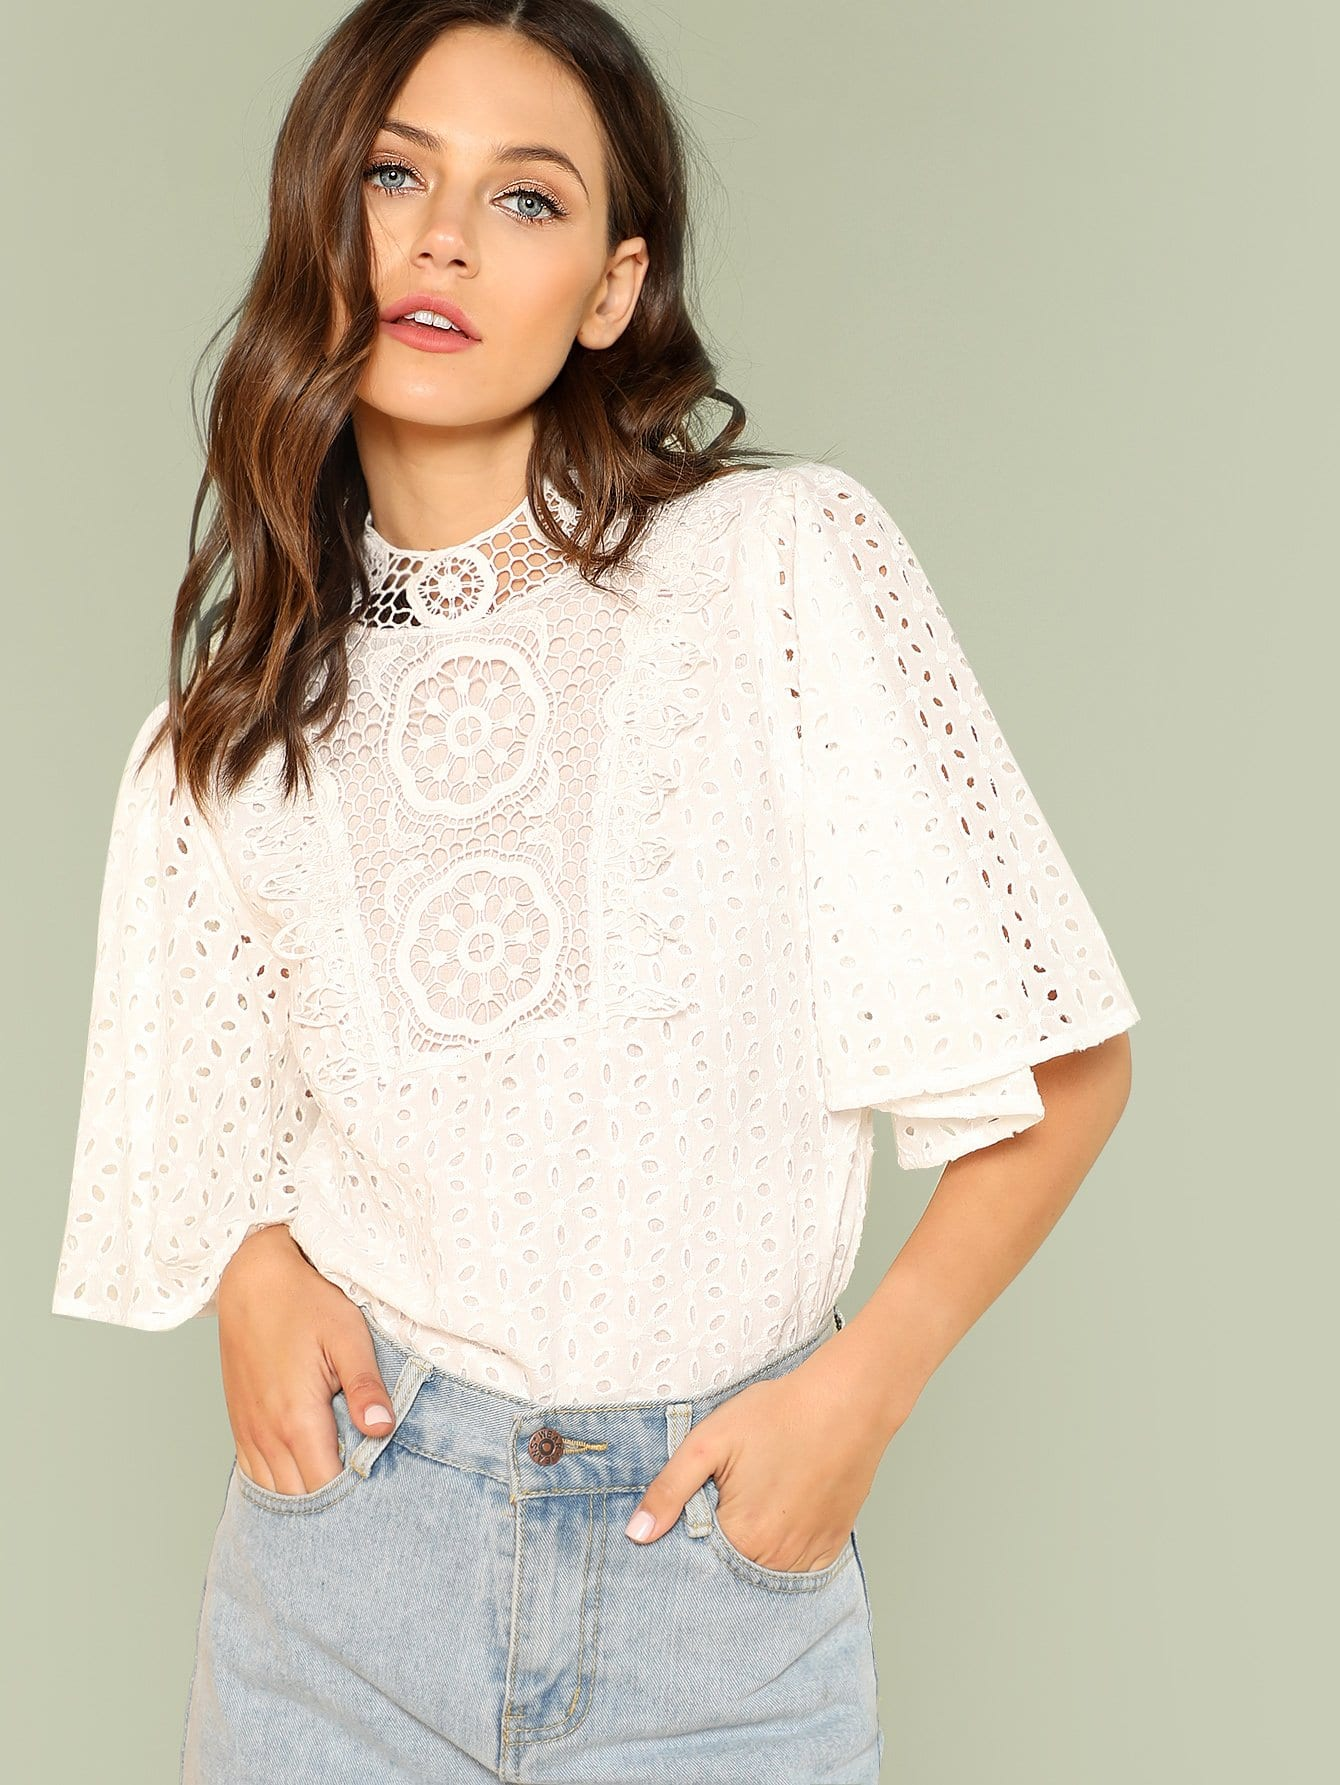 Lace Neck Eyelet Embroidered Top eyelet lace botanical print top